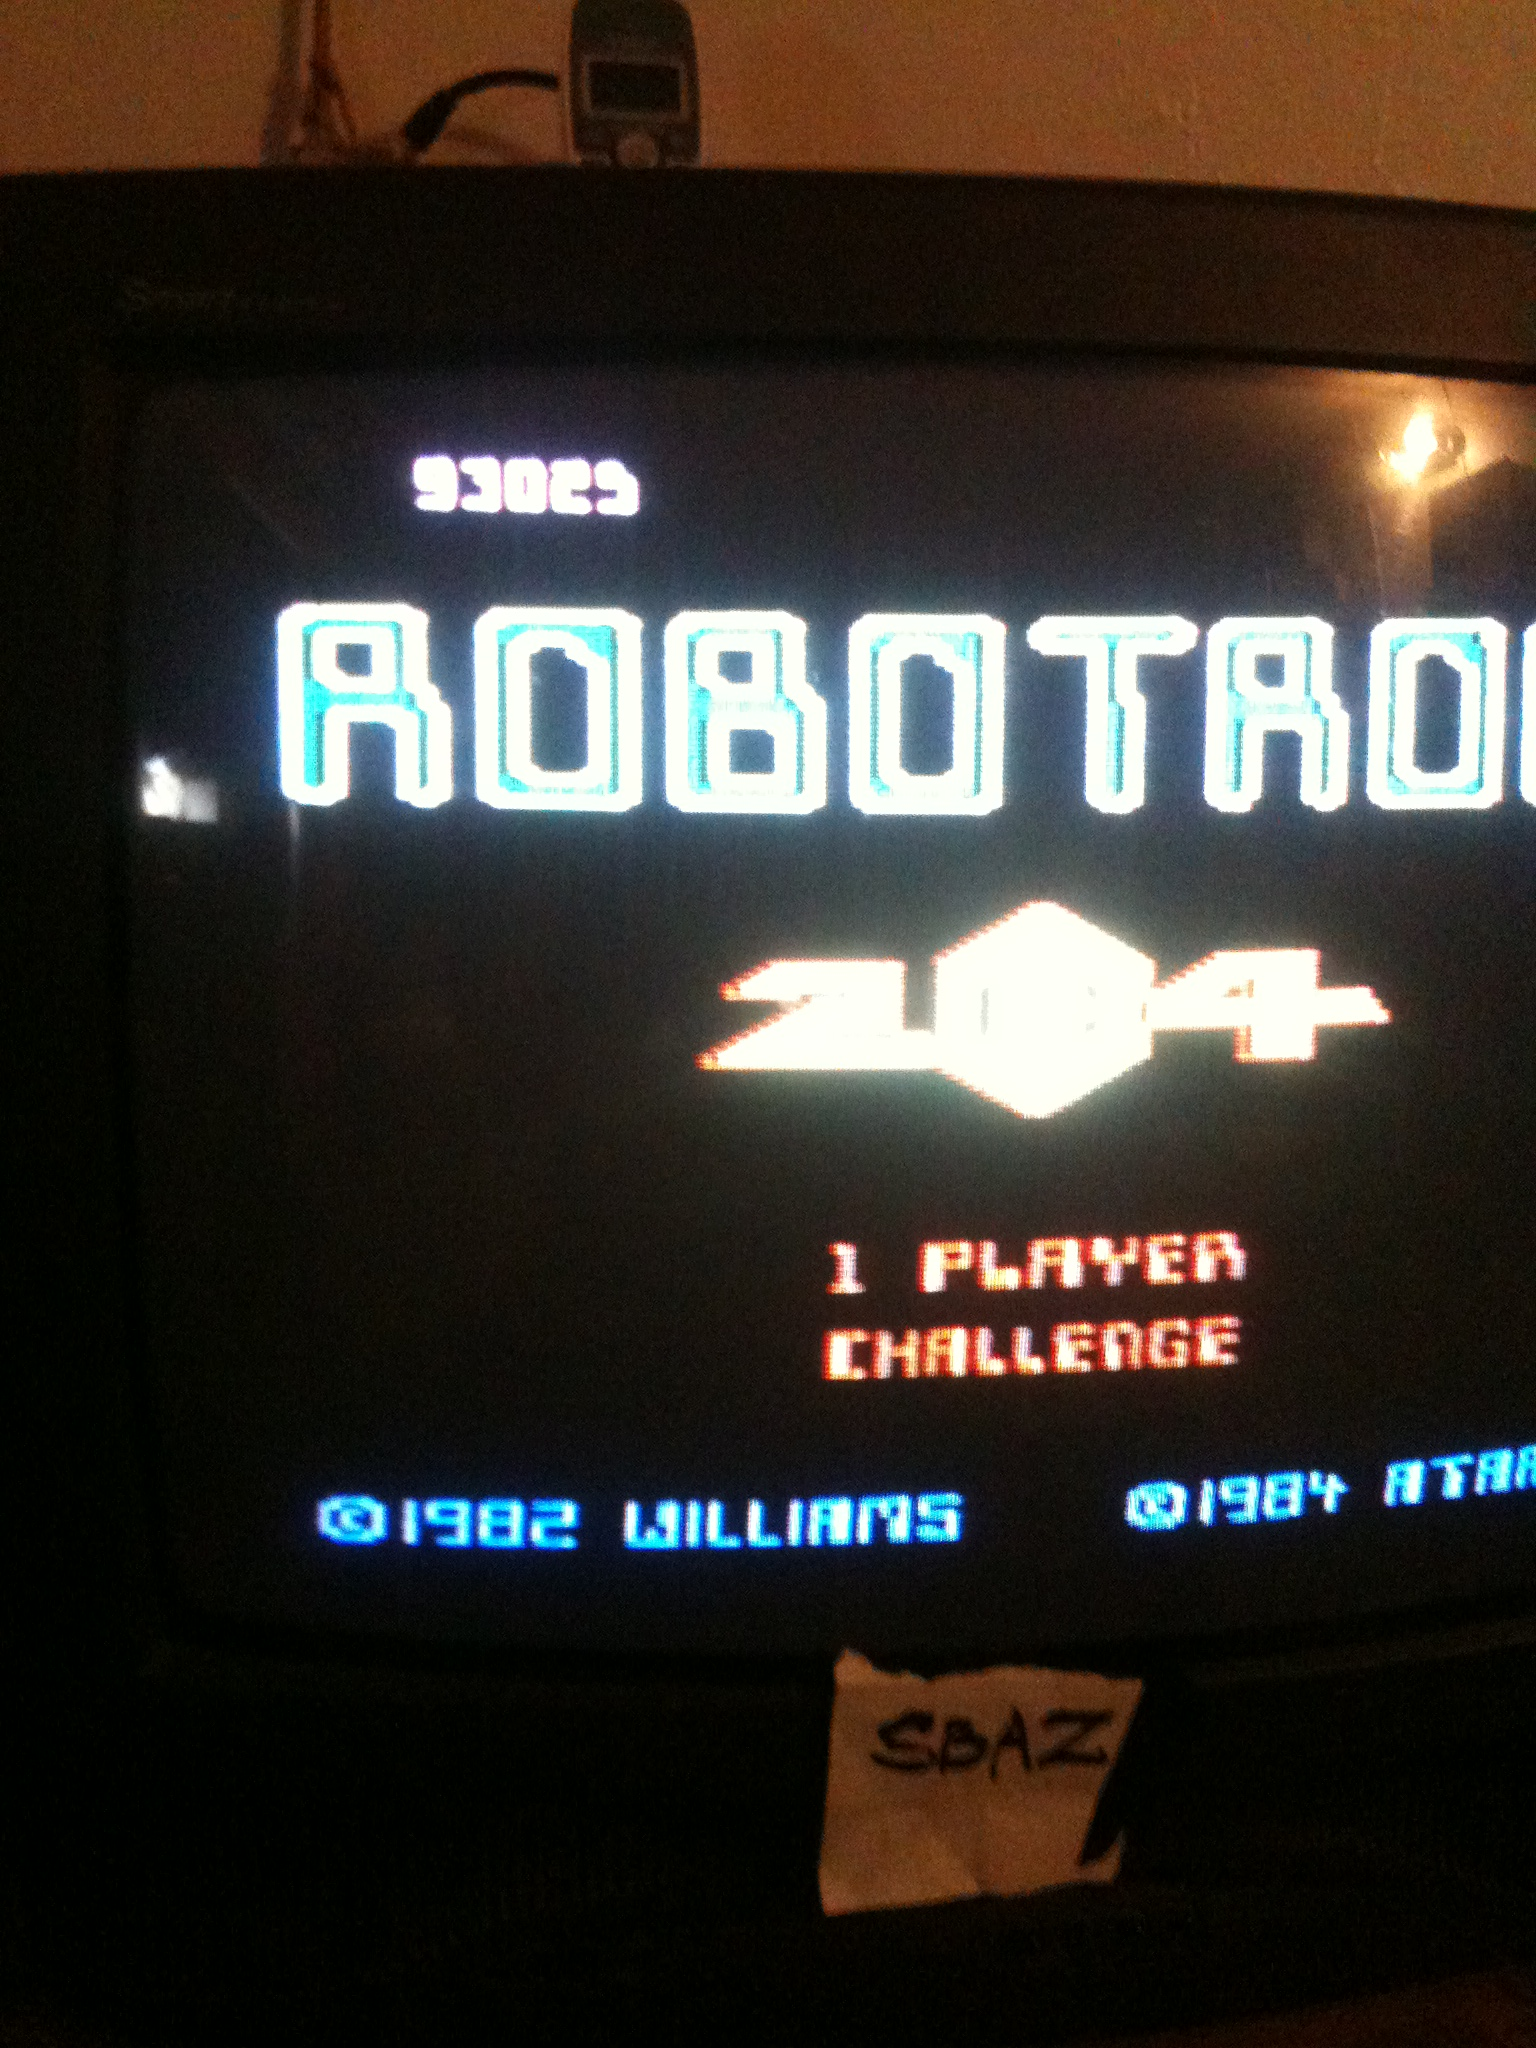 Robotron 2084: Challenge 93,025 points